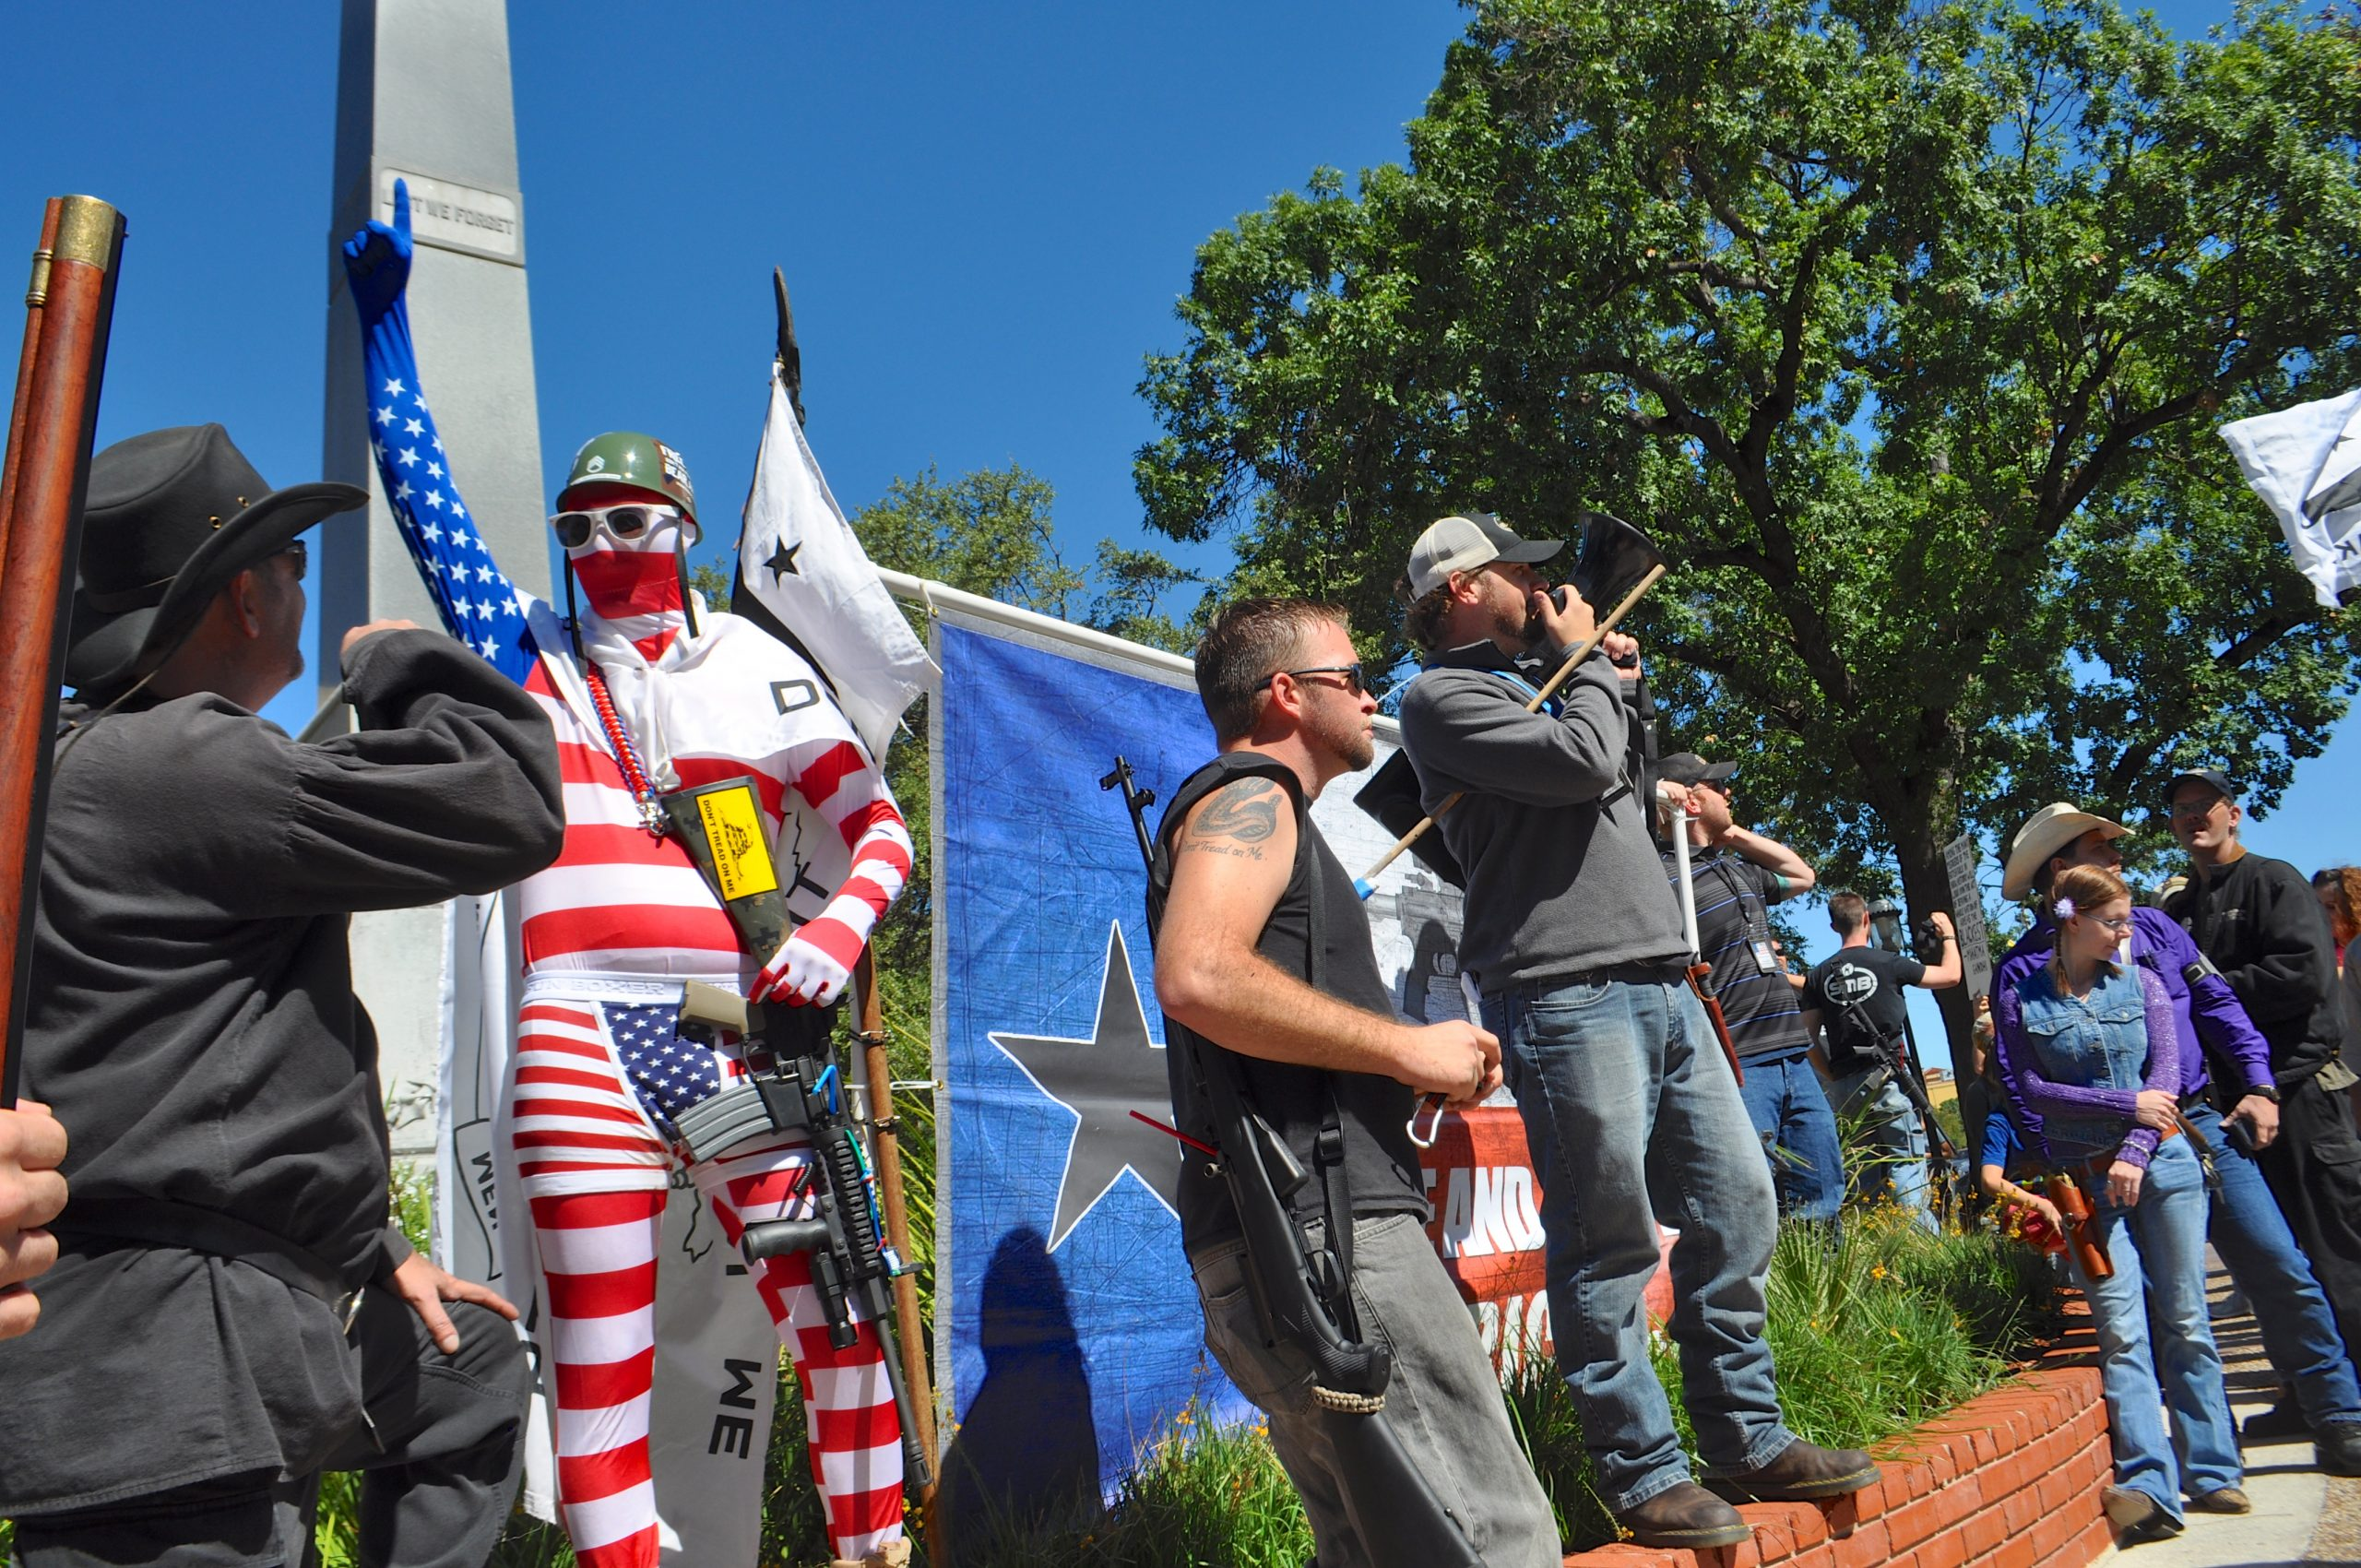 Citizens take to the megaphone during the less formal rally in Travis Park. Photo by Iris Dimmick.